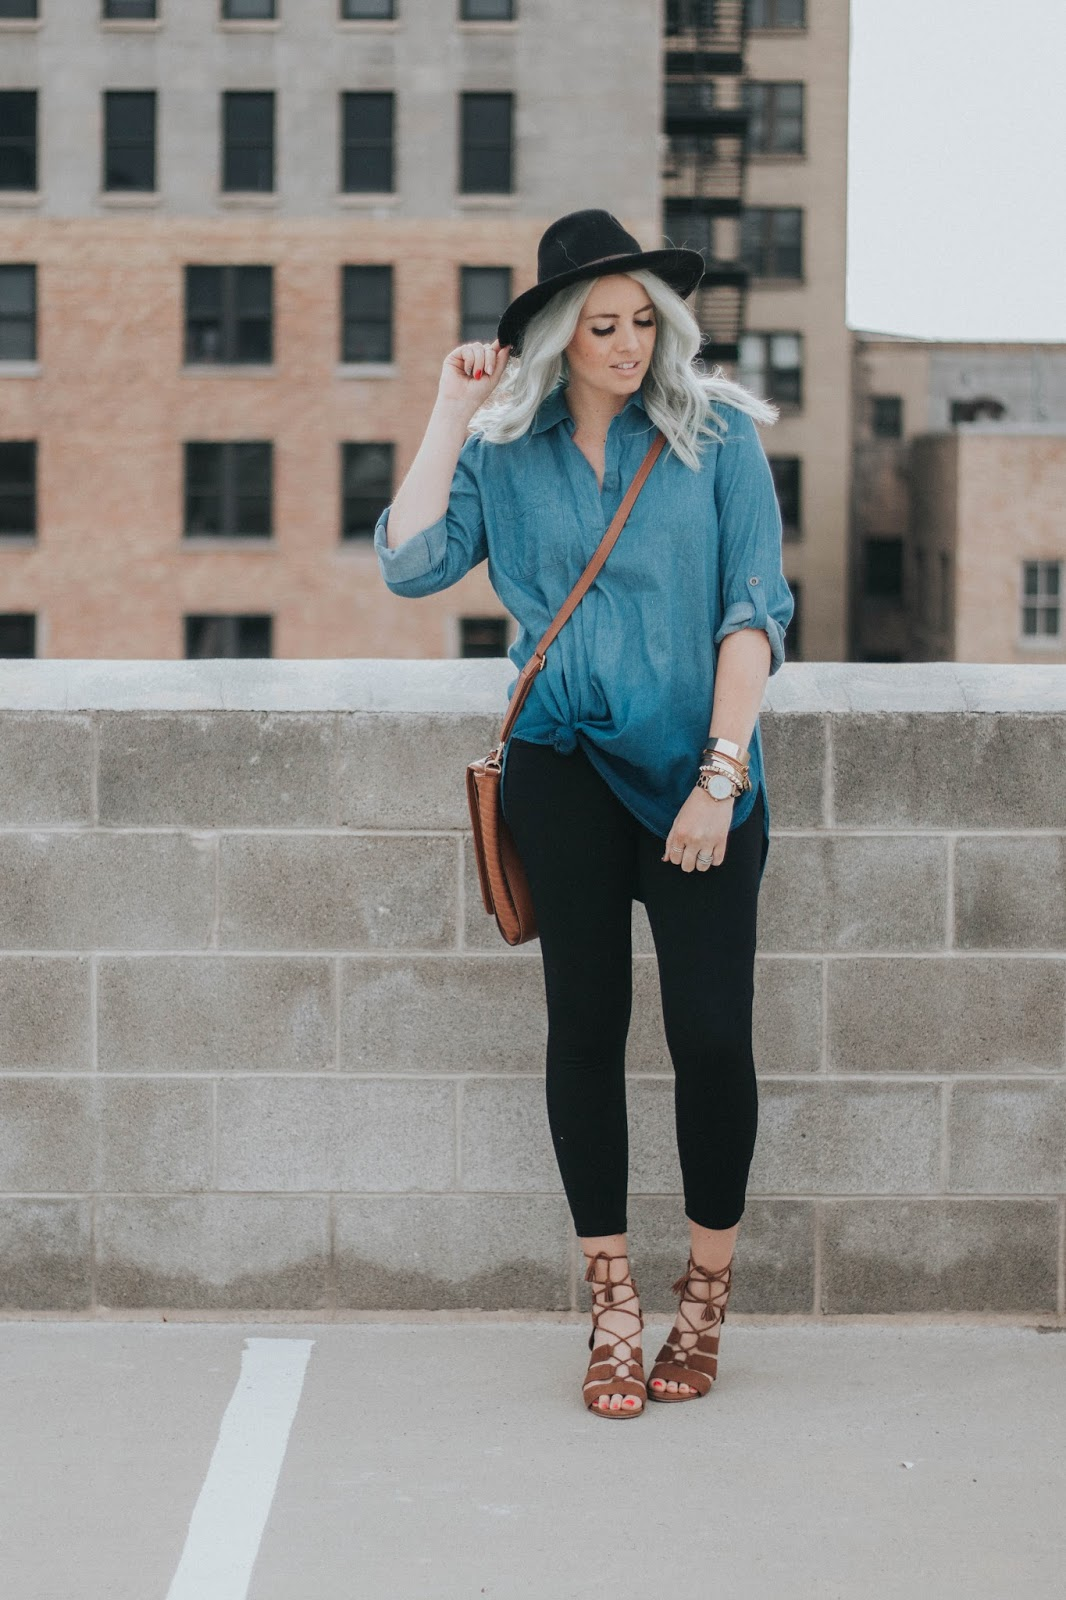 Shop Goldies, Utah Fashion Blogger, Spring Outfit